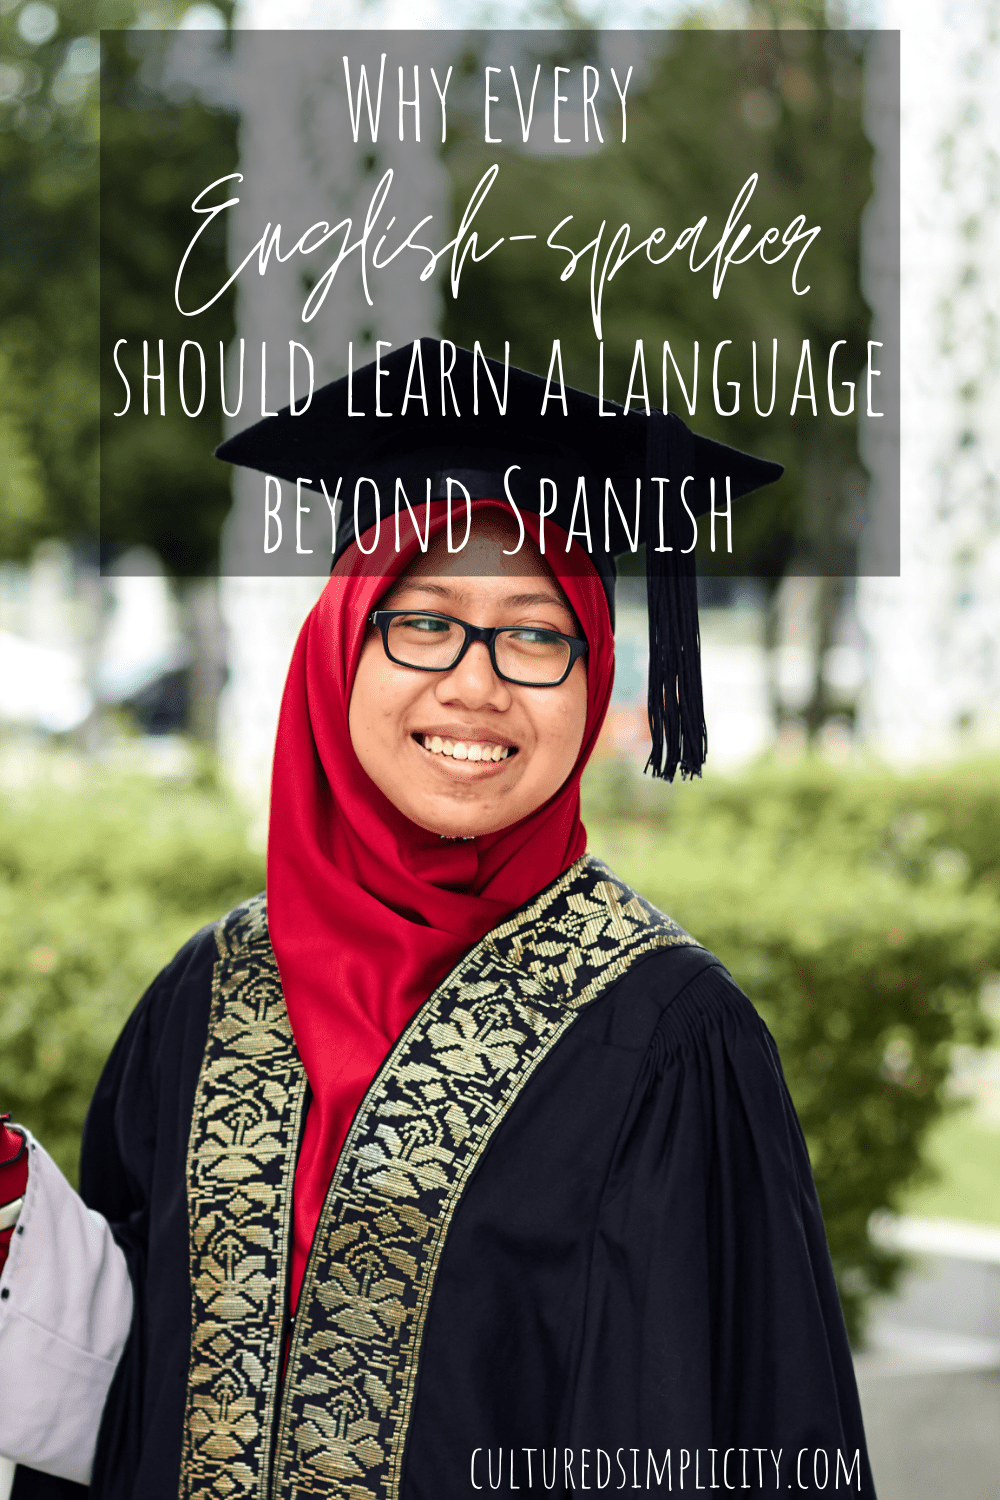 Why every English-speaker should learn a language beyond Spanish